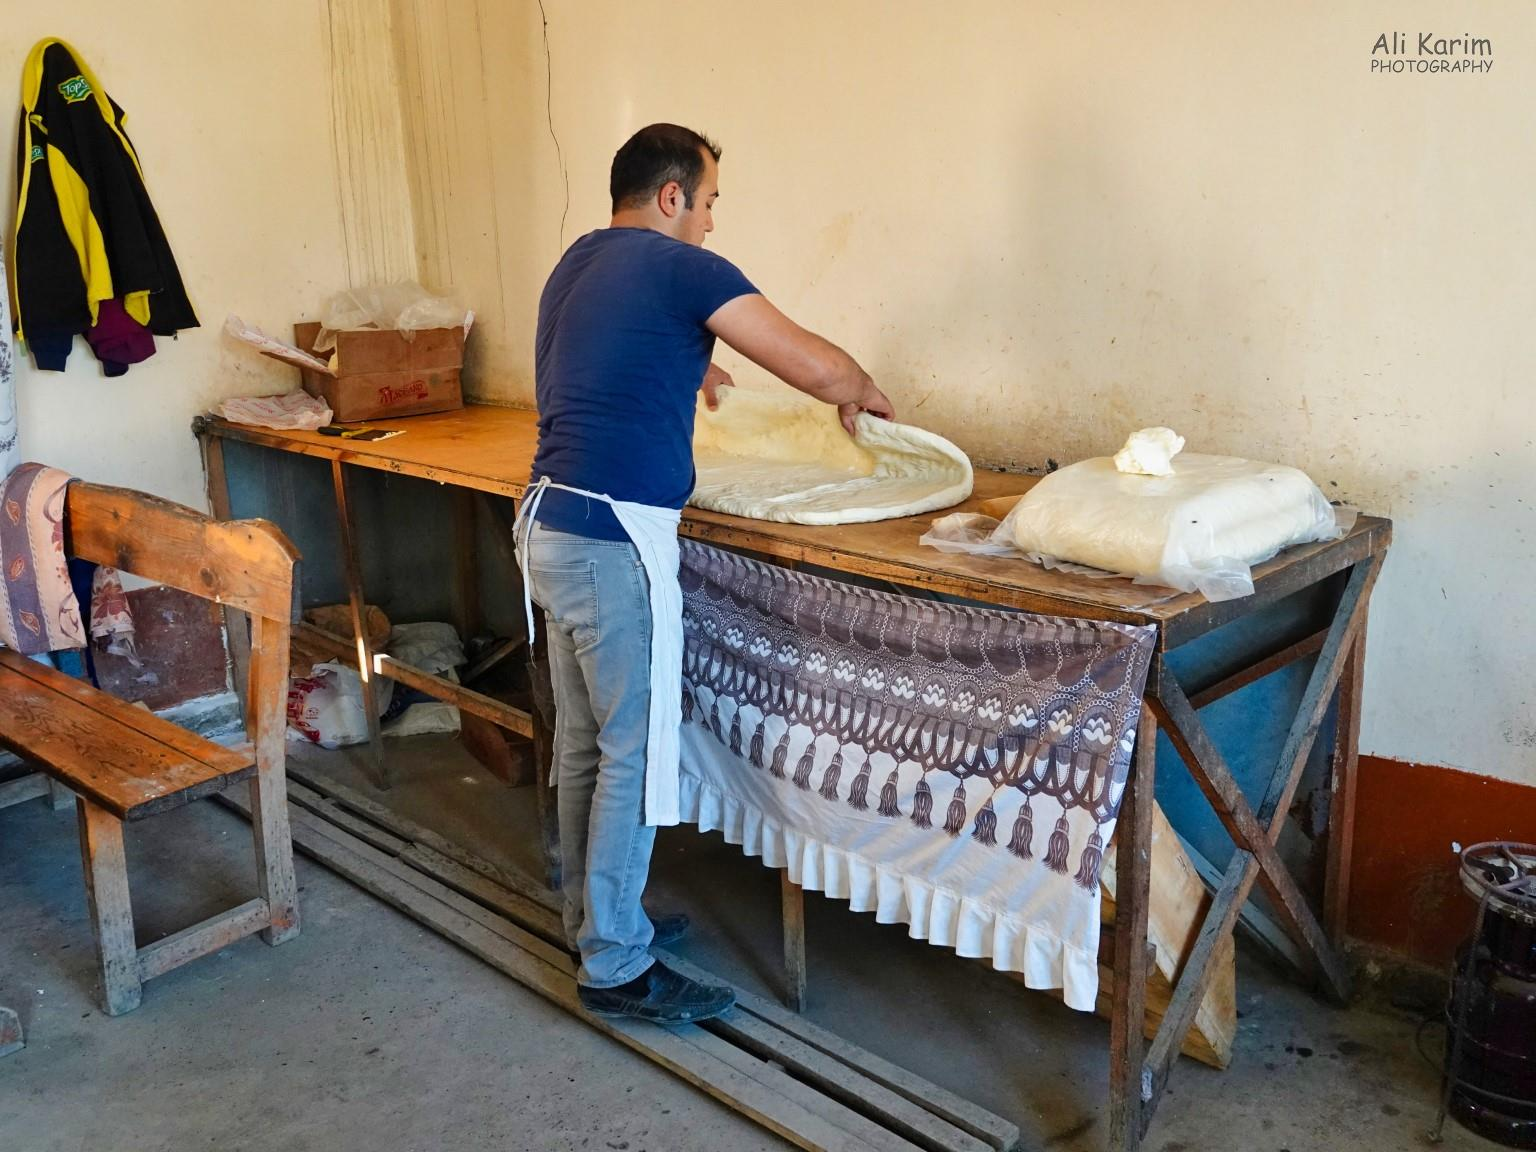 Samarkand, Uzbekistan Rolling out the dough for more samsa's for the evening at the roadside bakery